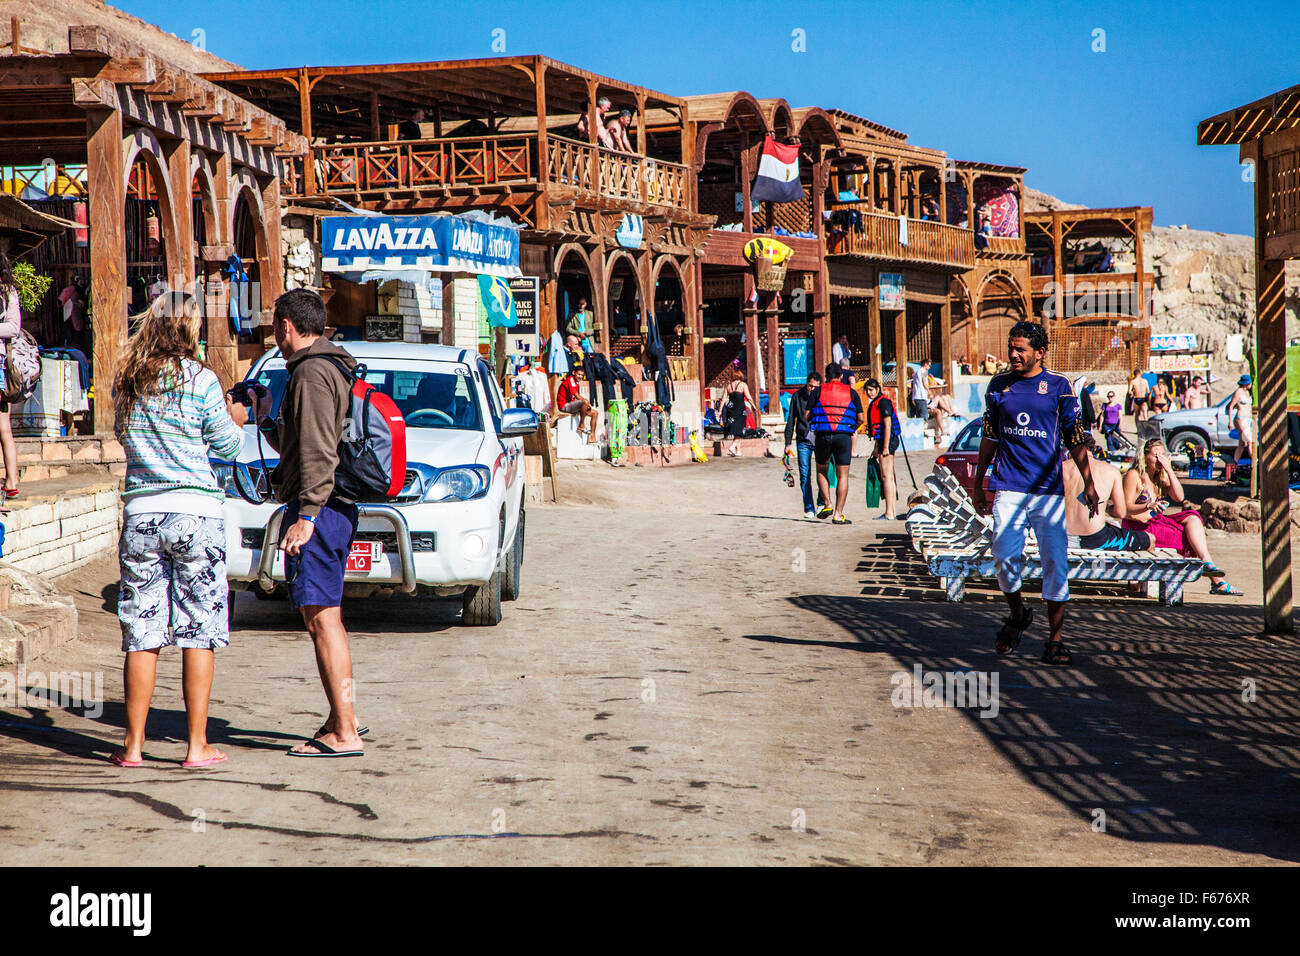 The scuba diving and snorkelling centre in Dahab, Egypt. - Stock Image